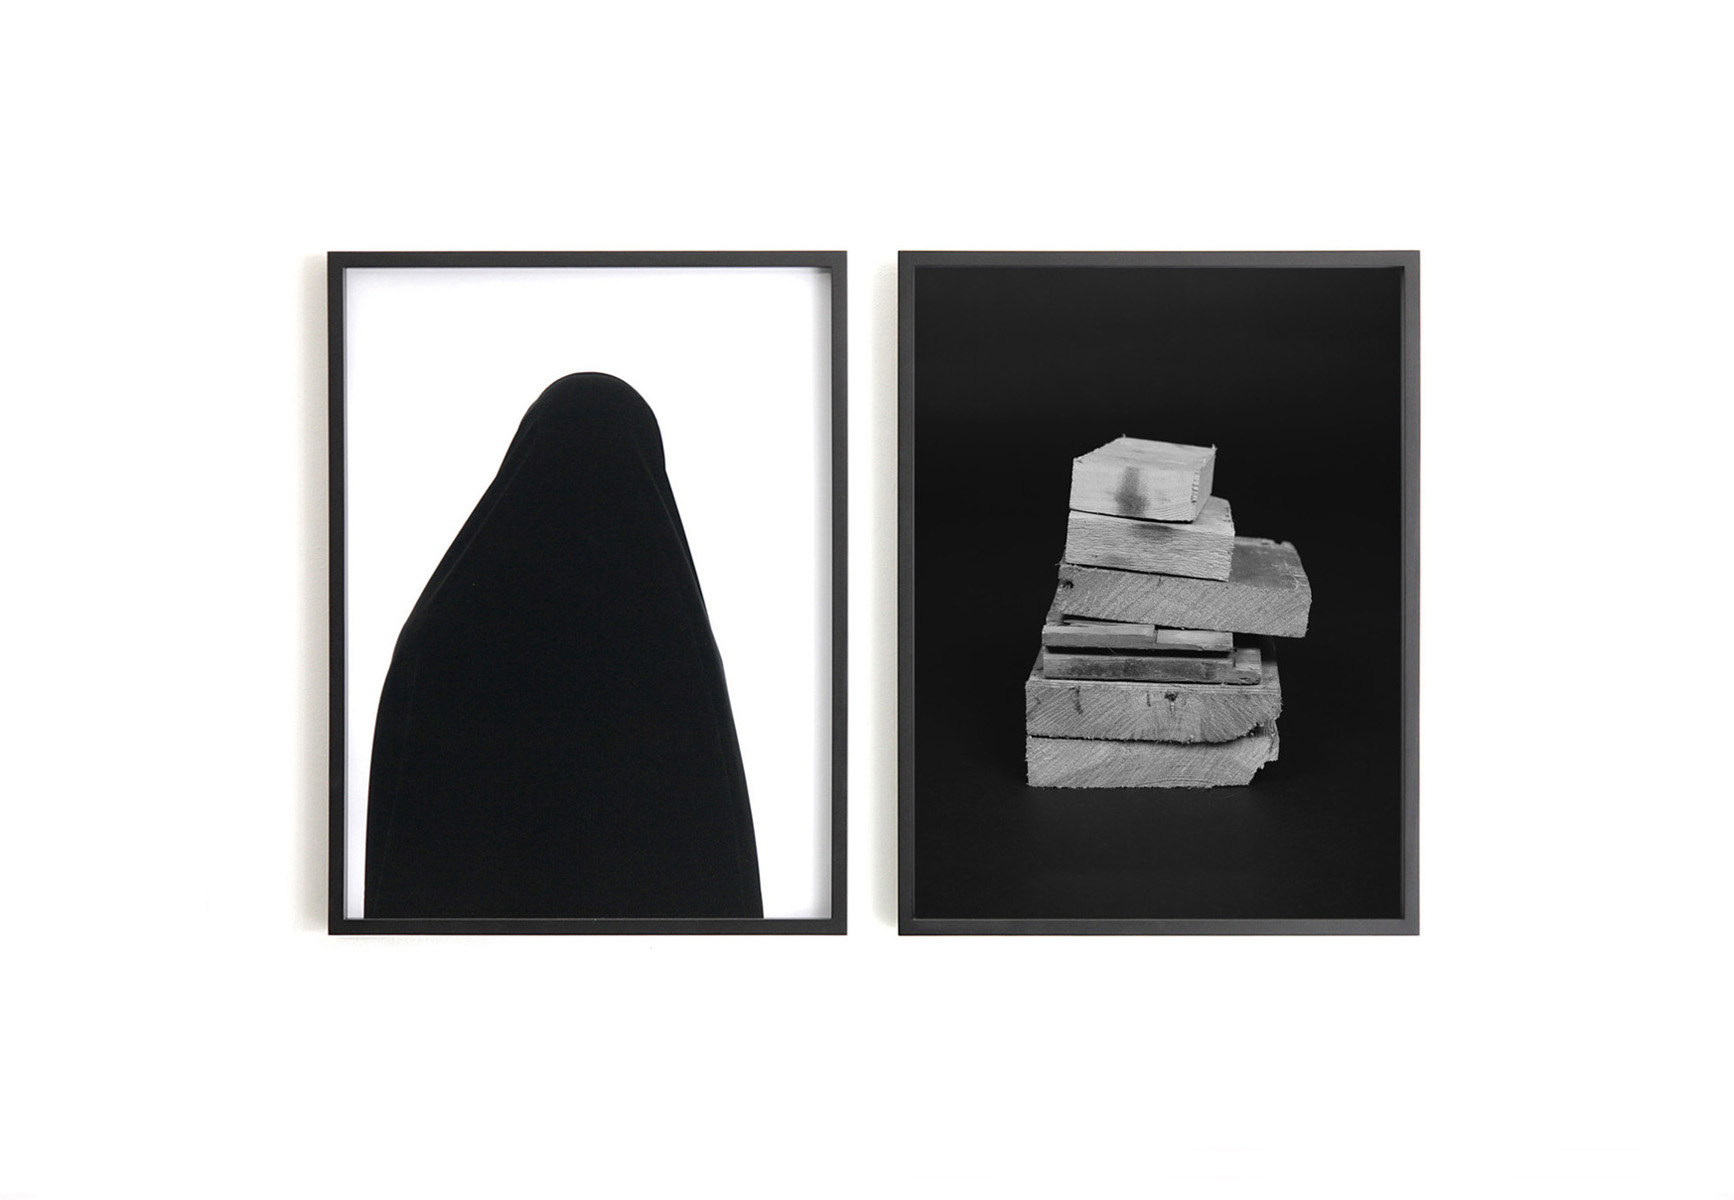 Sam Irons - Untitled (BM/HC), C-type Prints, 92 x 69cm / 48.5 x 37cm